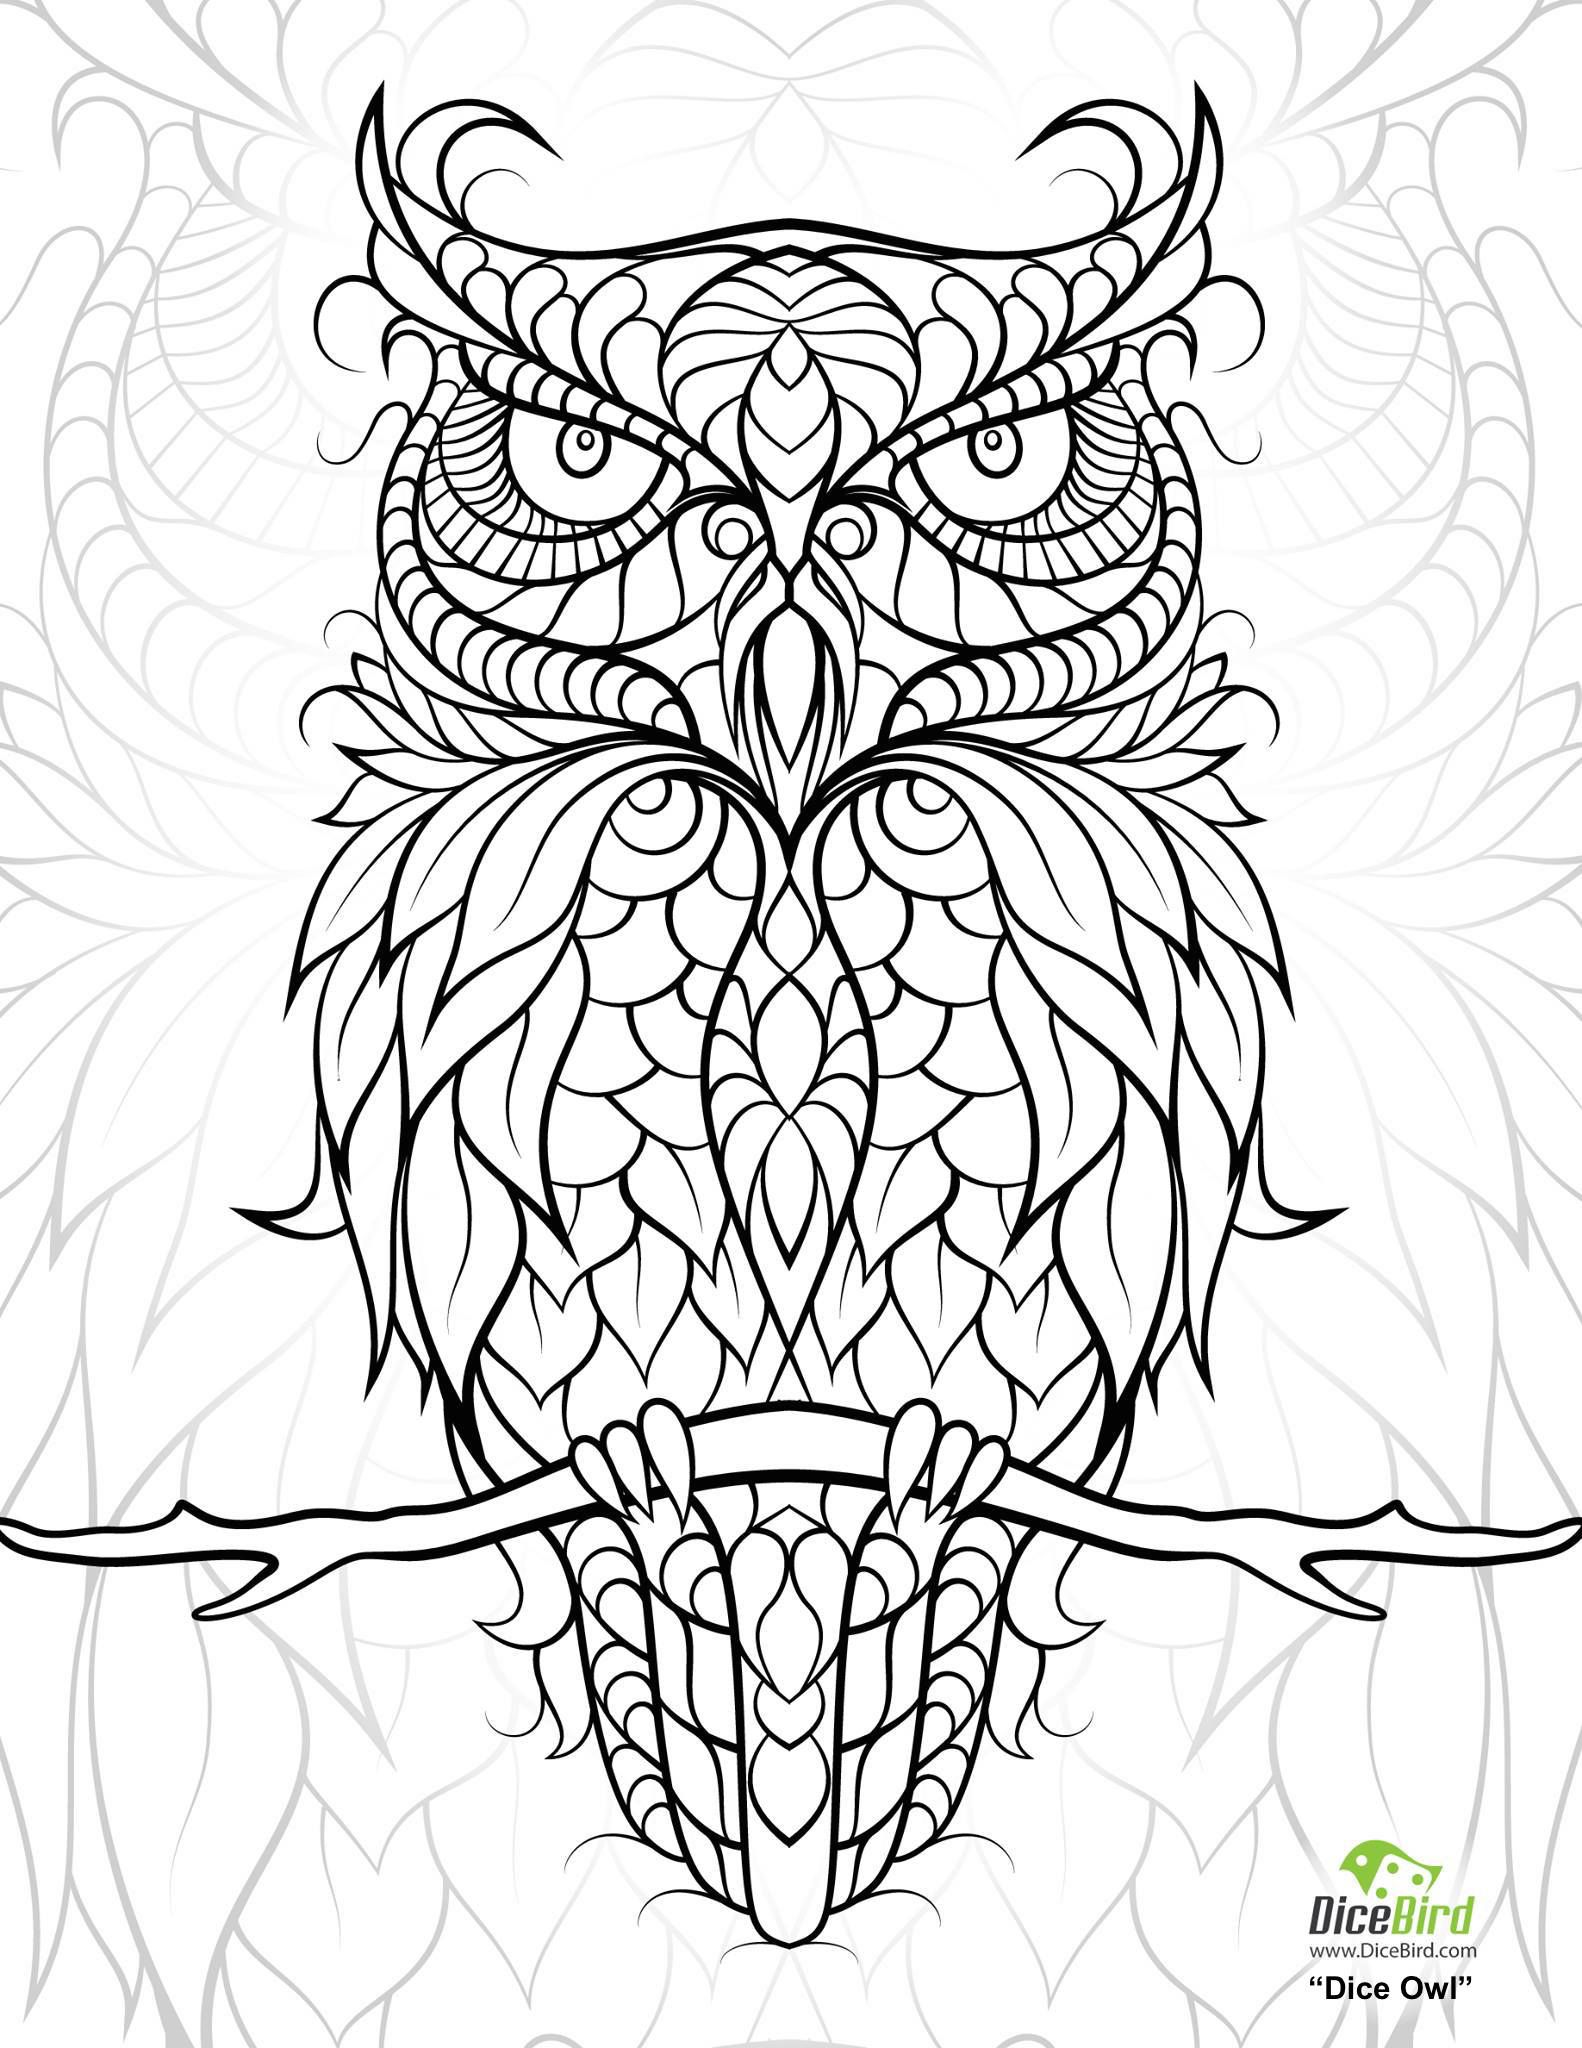 diceowl free printable adult coloring pages